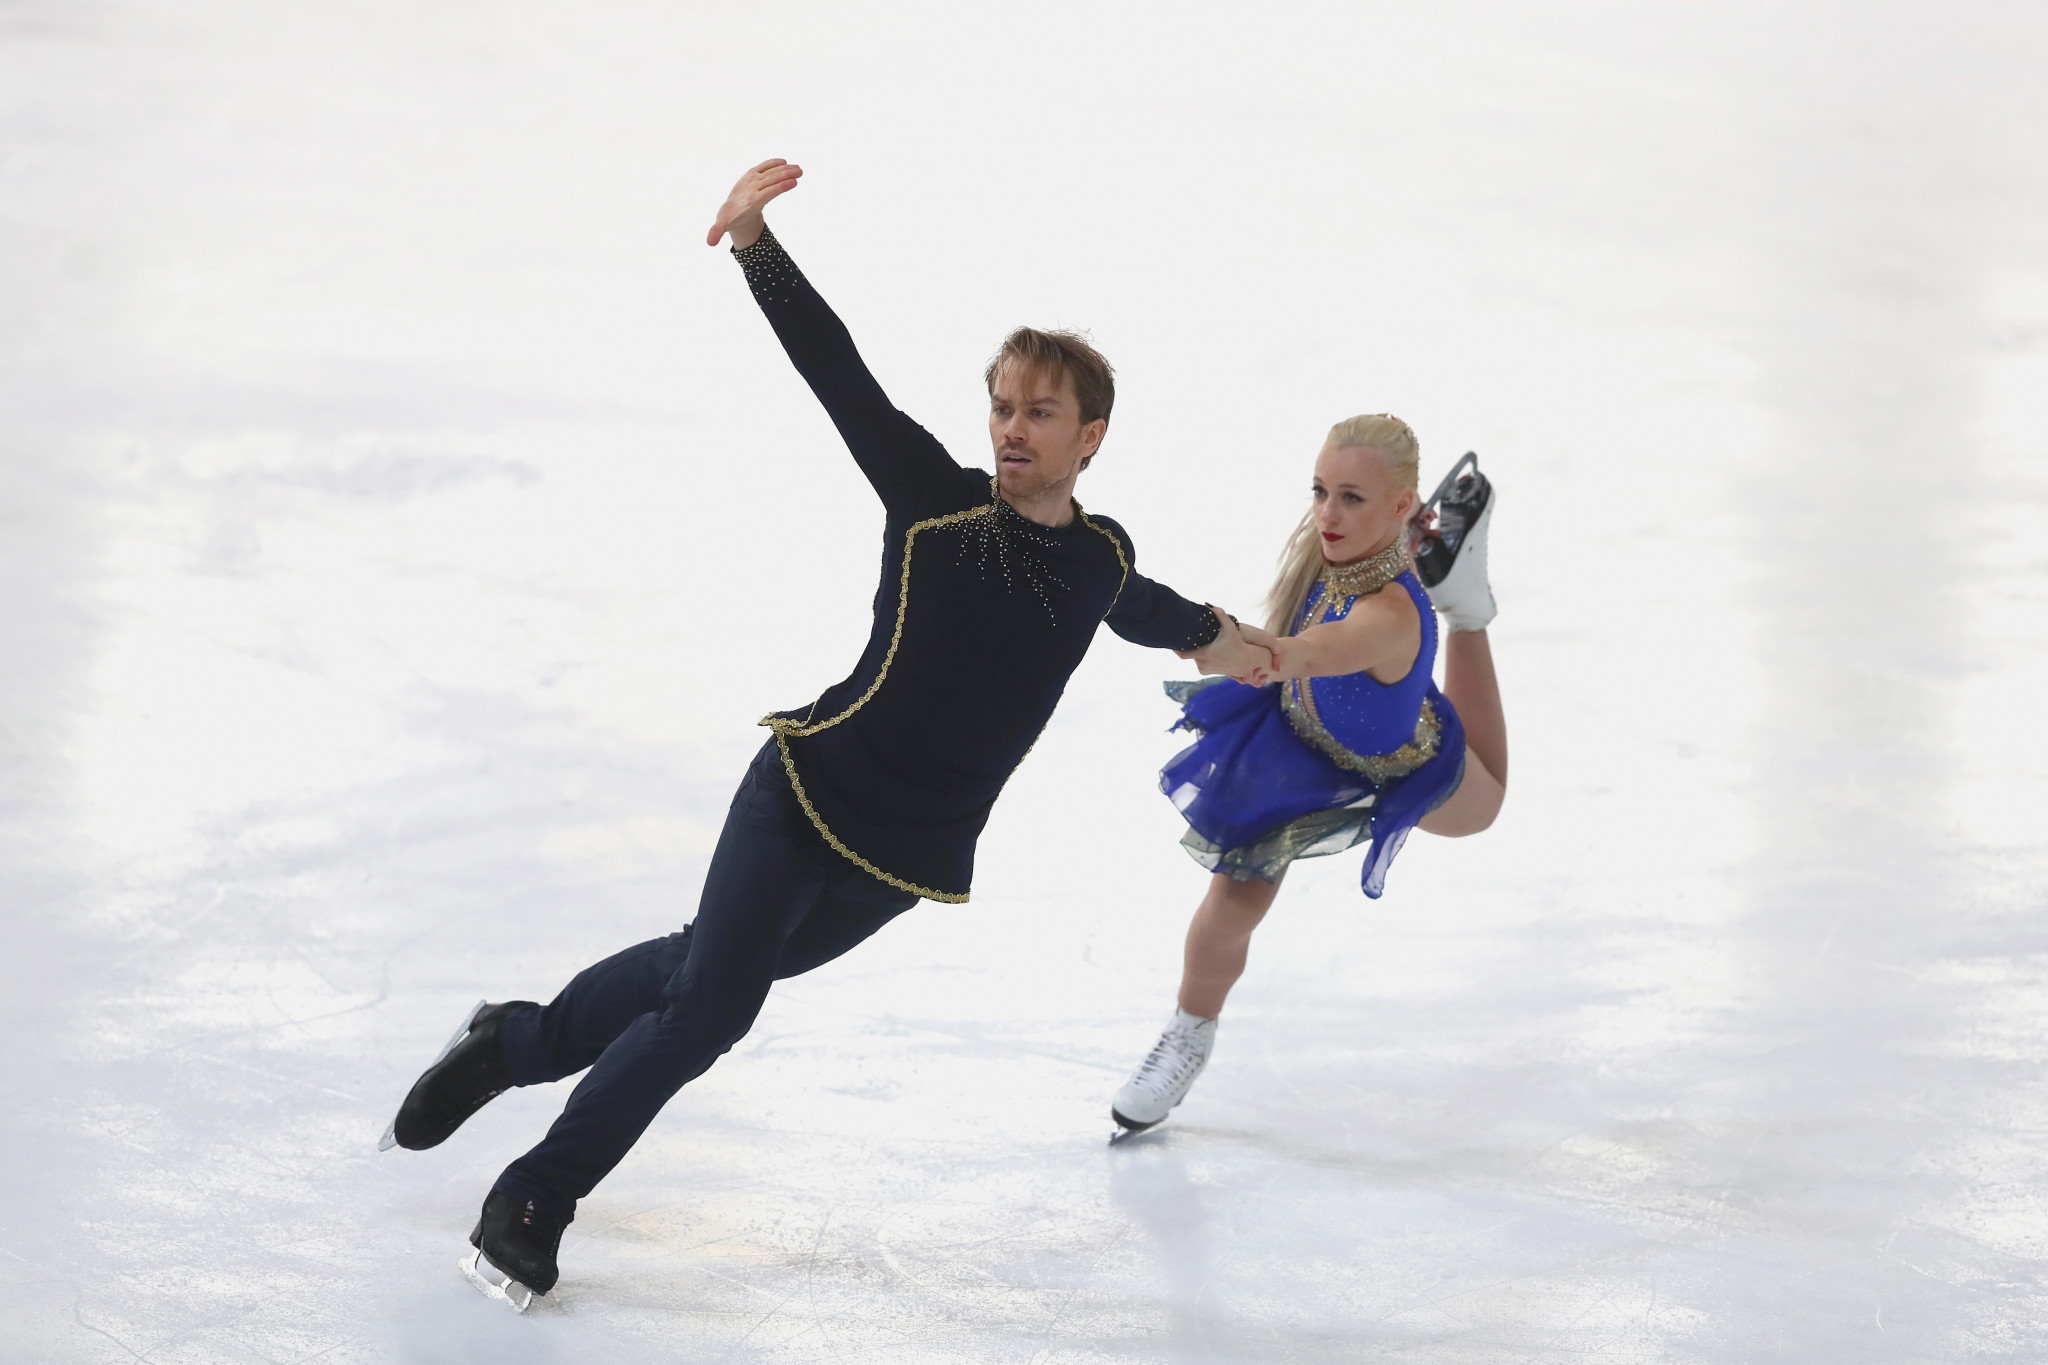 BOA selects Buckland and Coomes for Pyeongchang 2018 following Nebelhorn Trophy success